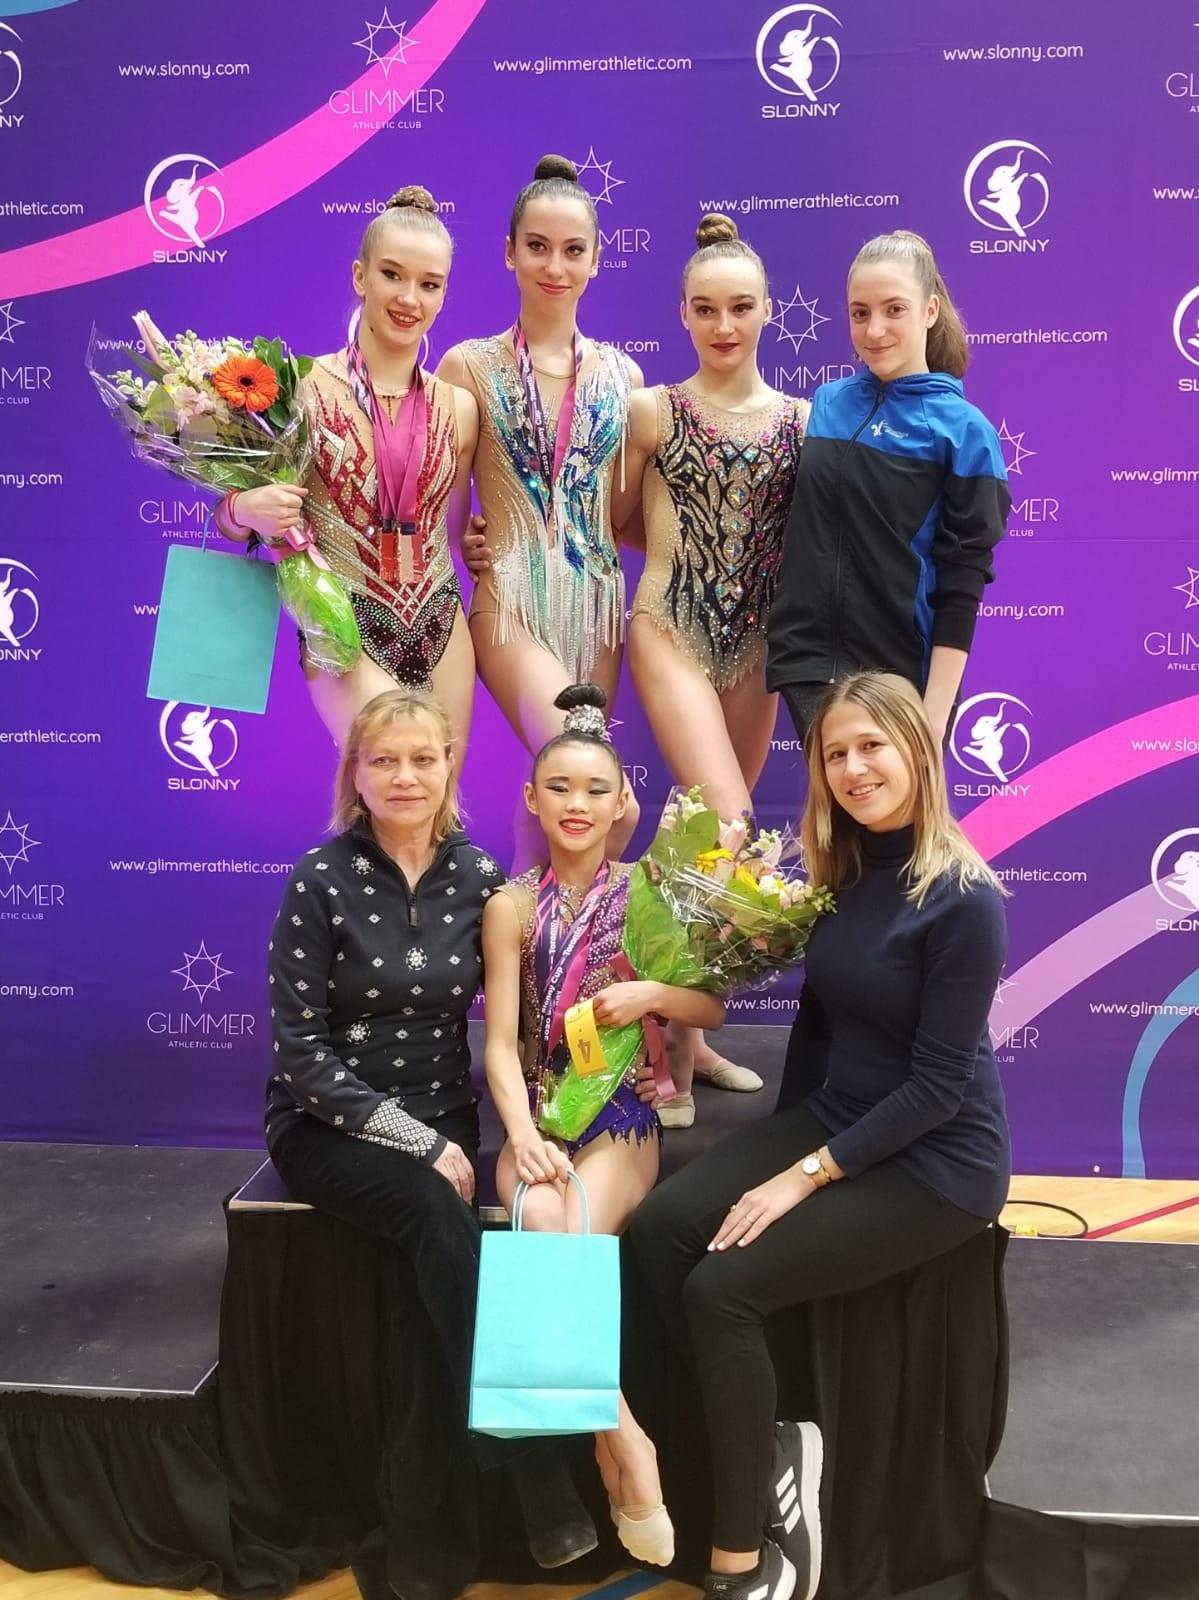 Slonny-Cup-2020---Team-Questo-with-coaches-Natalia-Popova-and-Katia-Shtrevensky.jpg